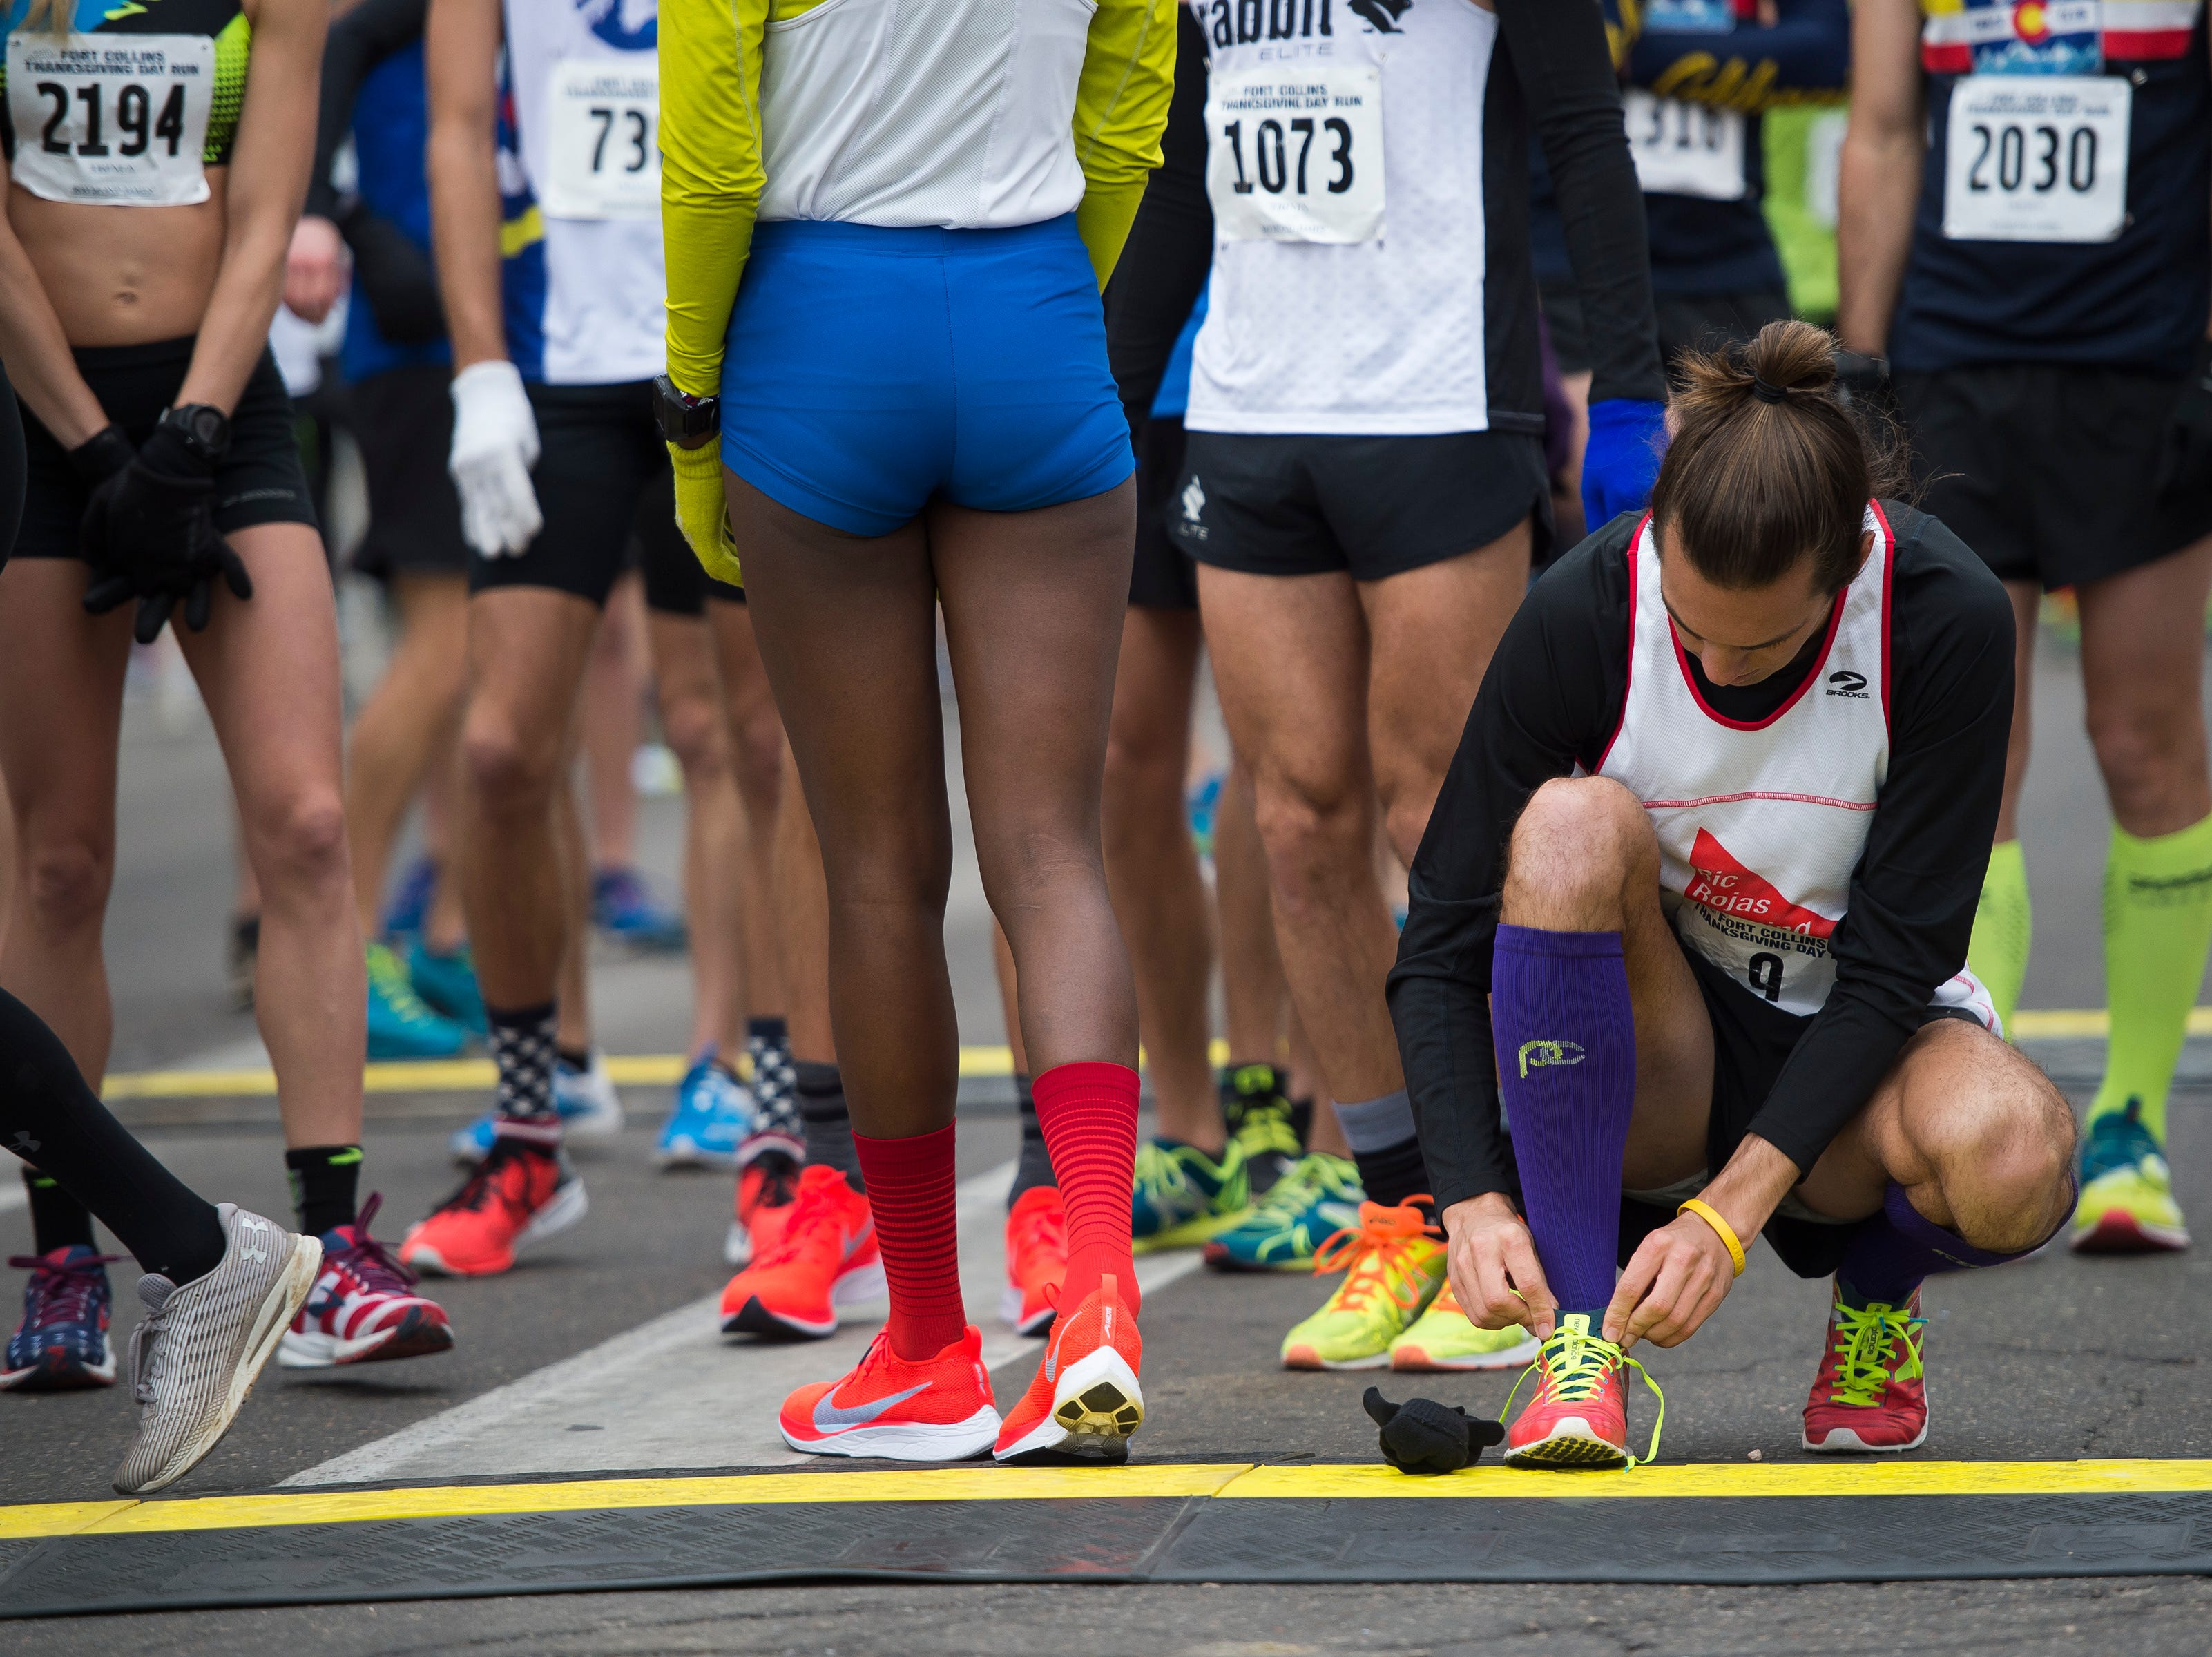 Elite runners prepare for the Fort Collins Thanksgiving Day Run on Thursday, Nov. 22, 2018, in Old Town Fort Collins, Colo.